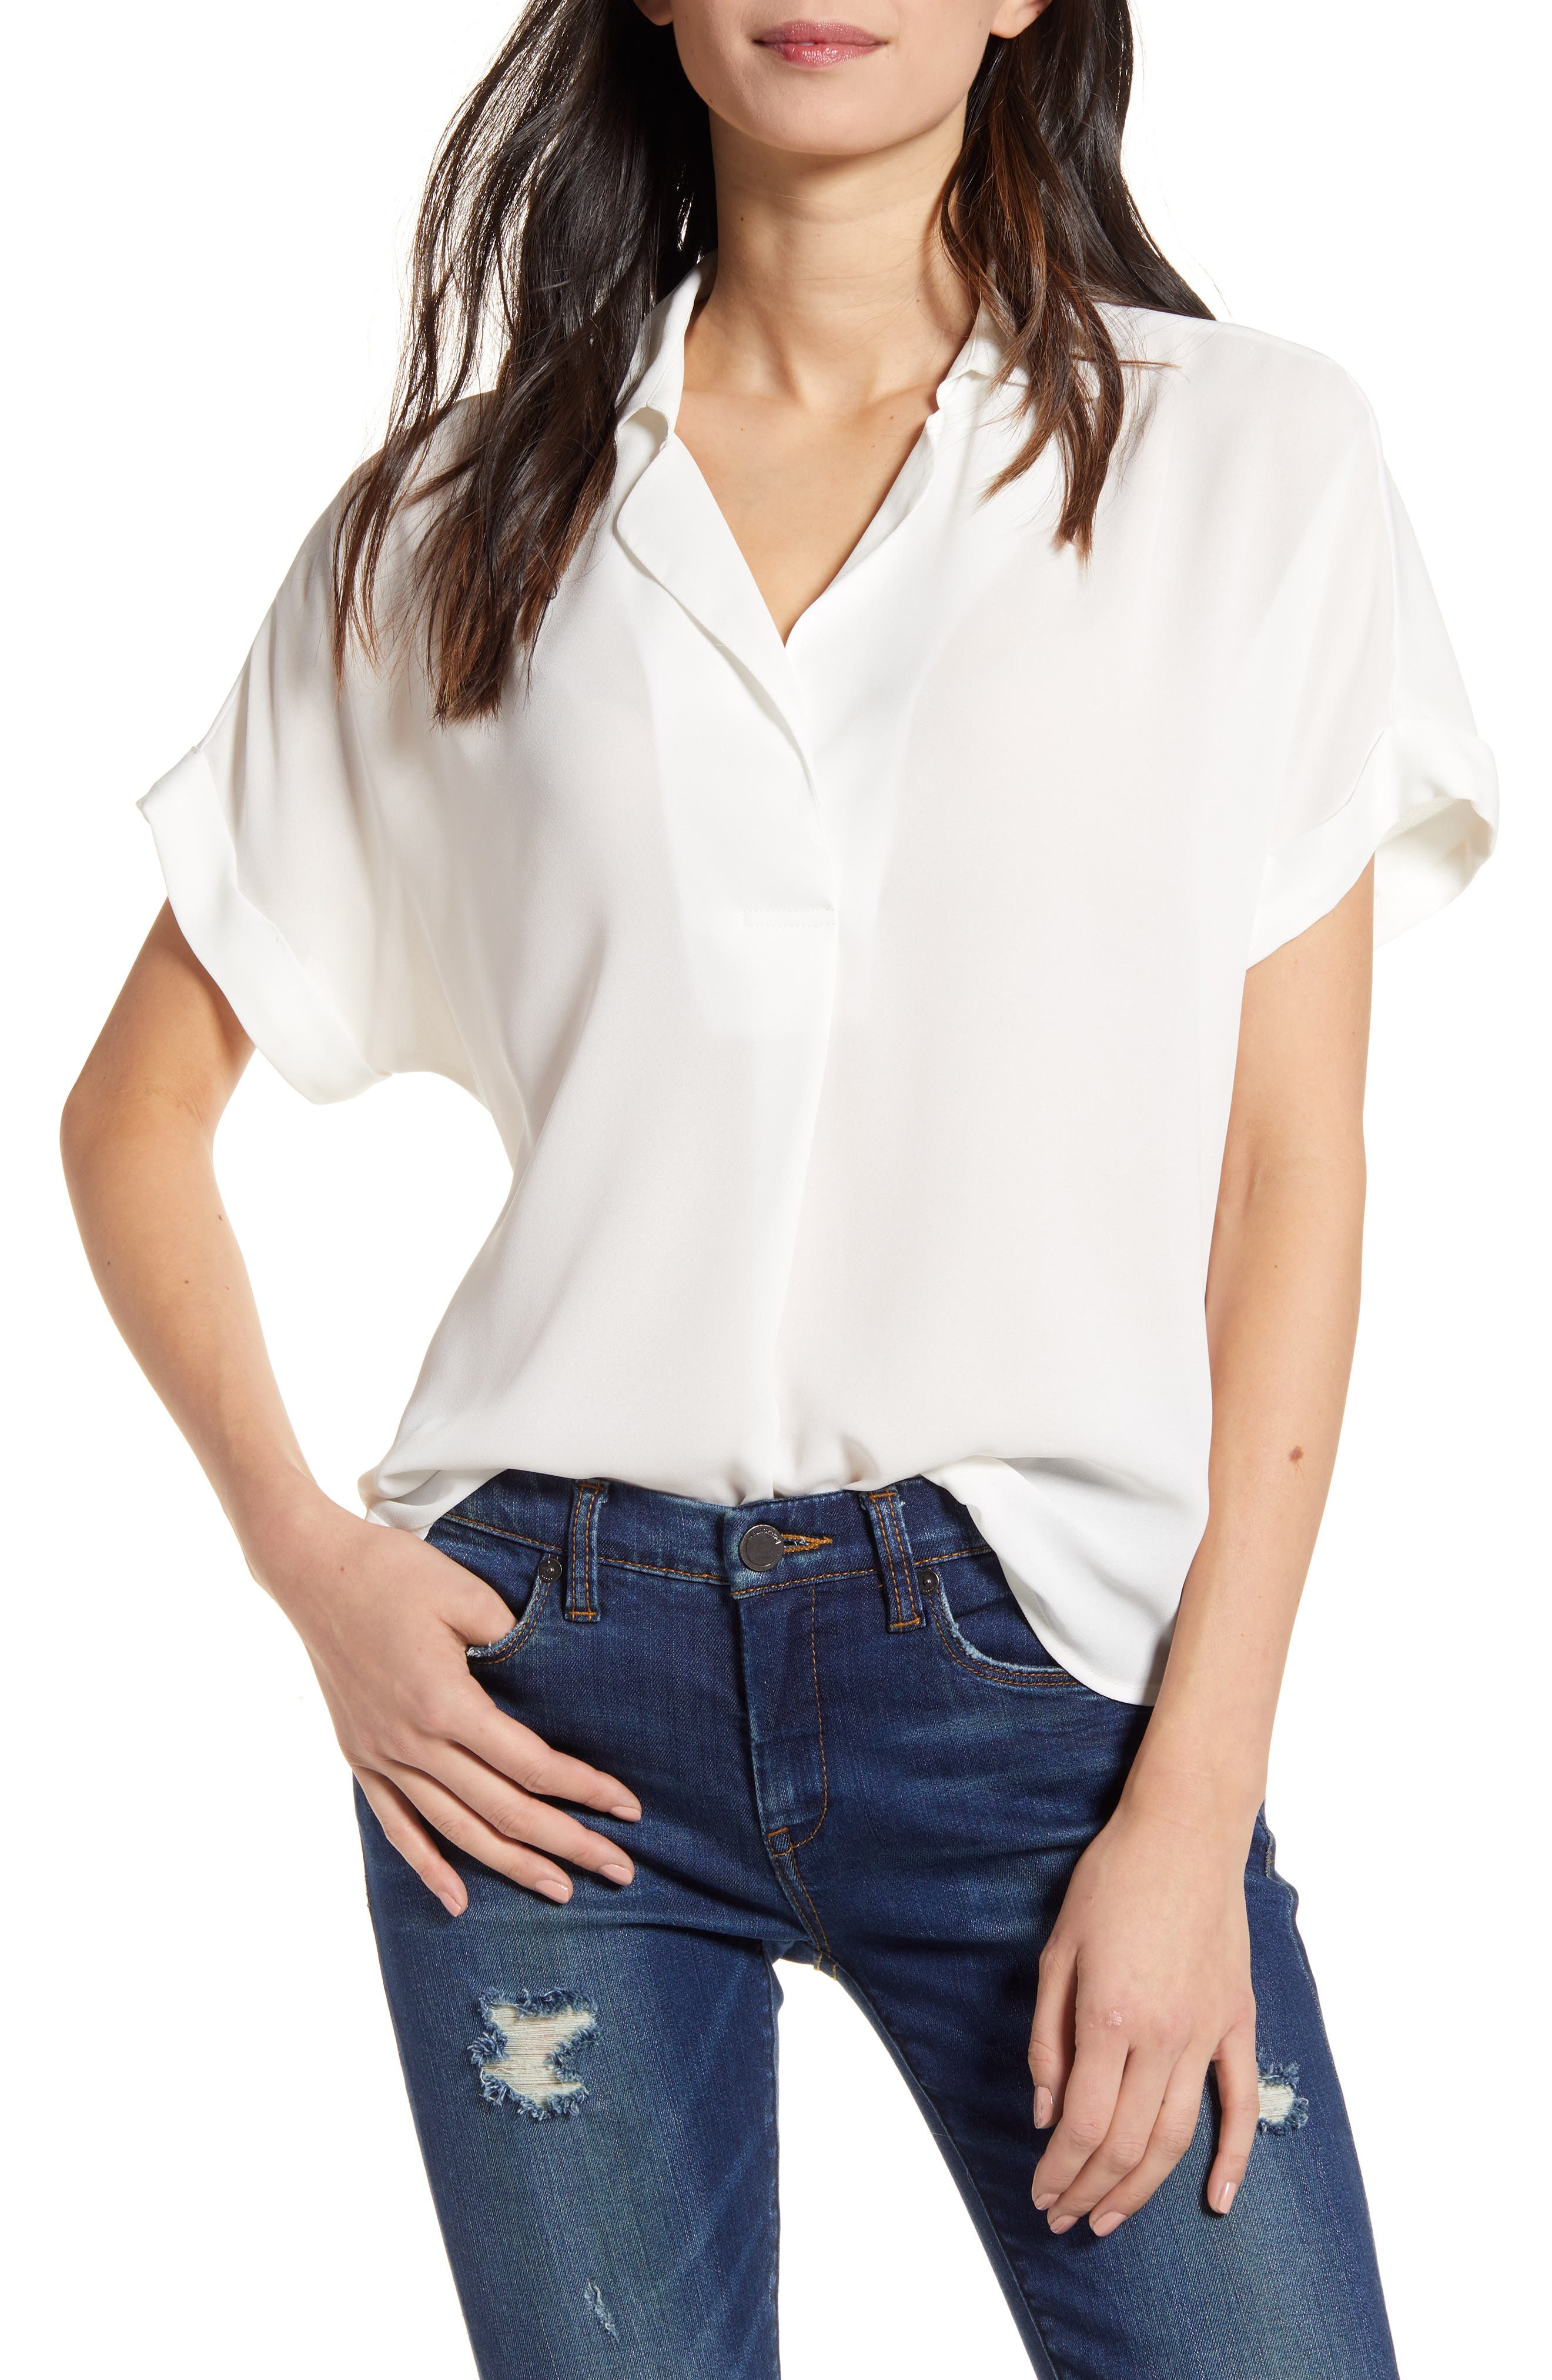 In a playful twist on a classic, this breezy versatile top closes at the back. Style Name: All In Favor Button Back Top. Style Number: 5950424. Available in stores.